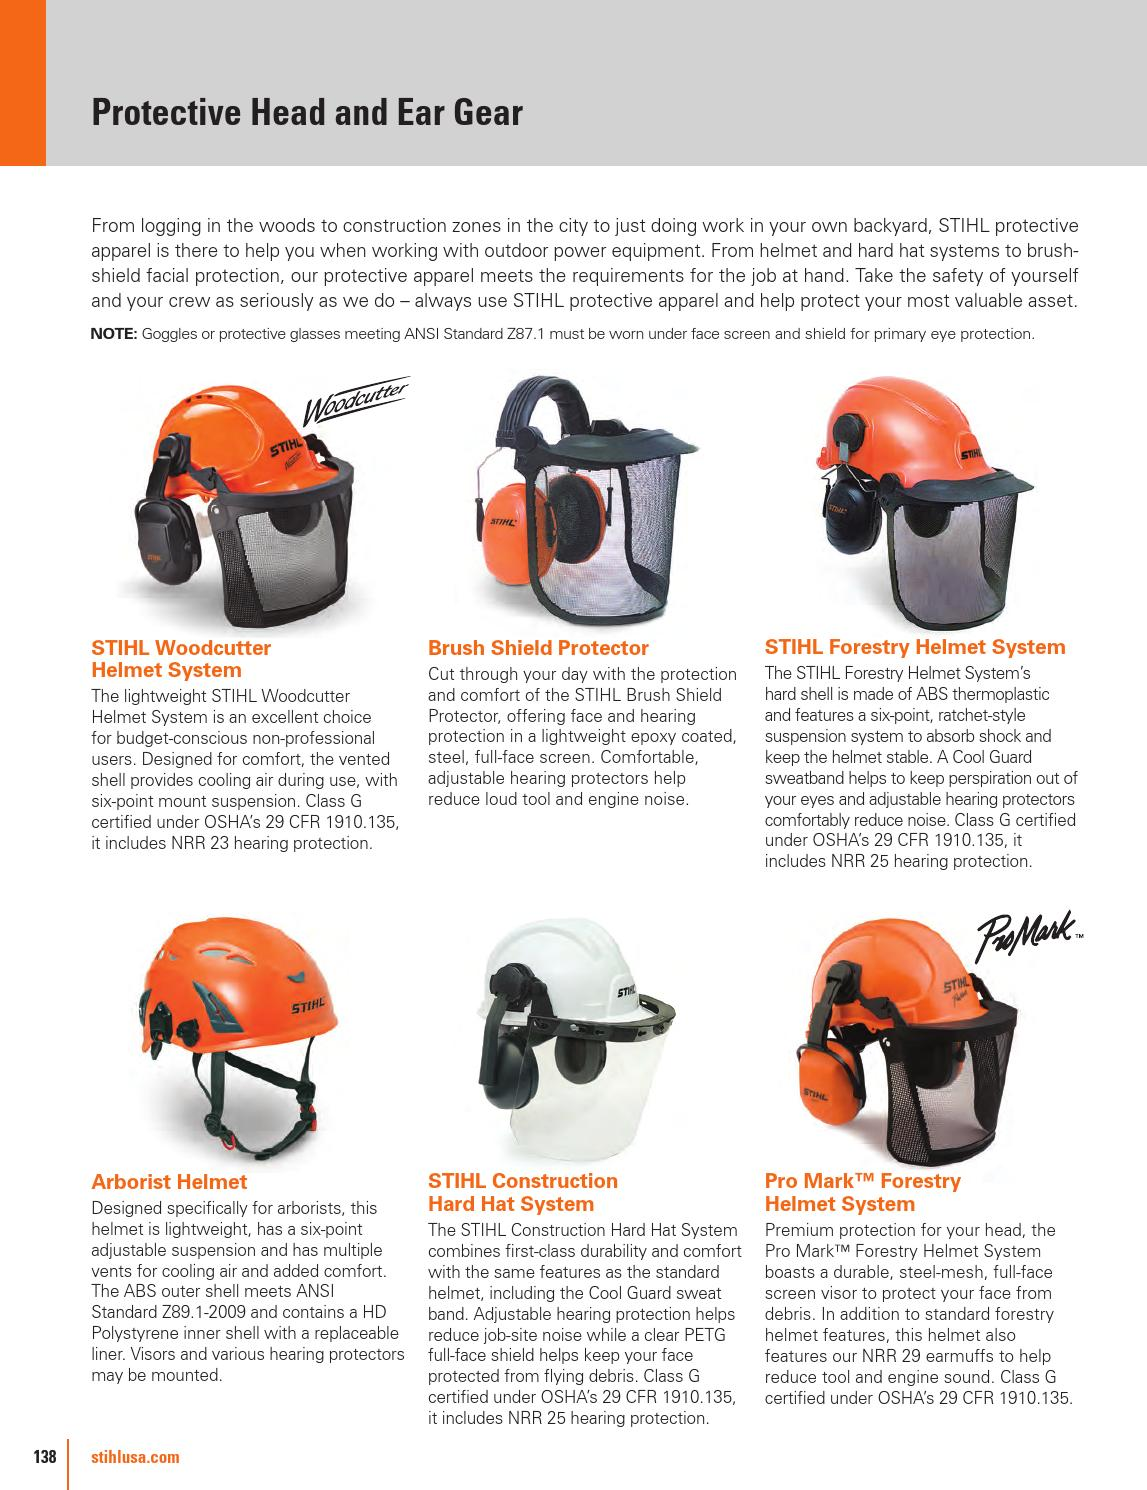 Stihl product catalog by Anthony Chartier - issuu